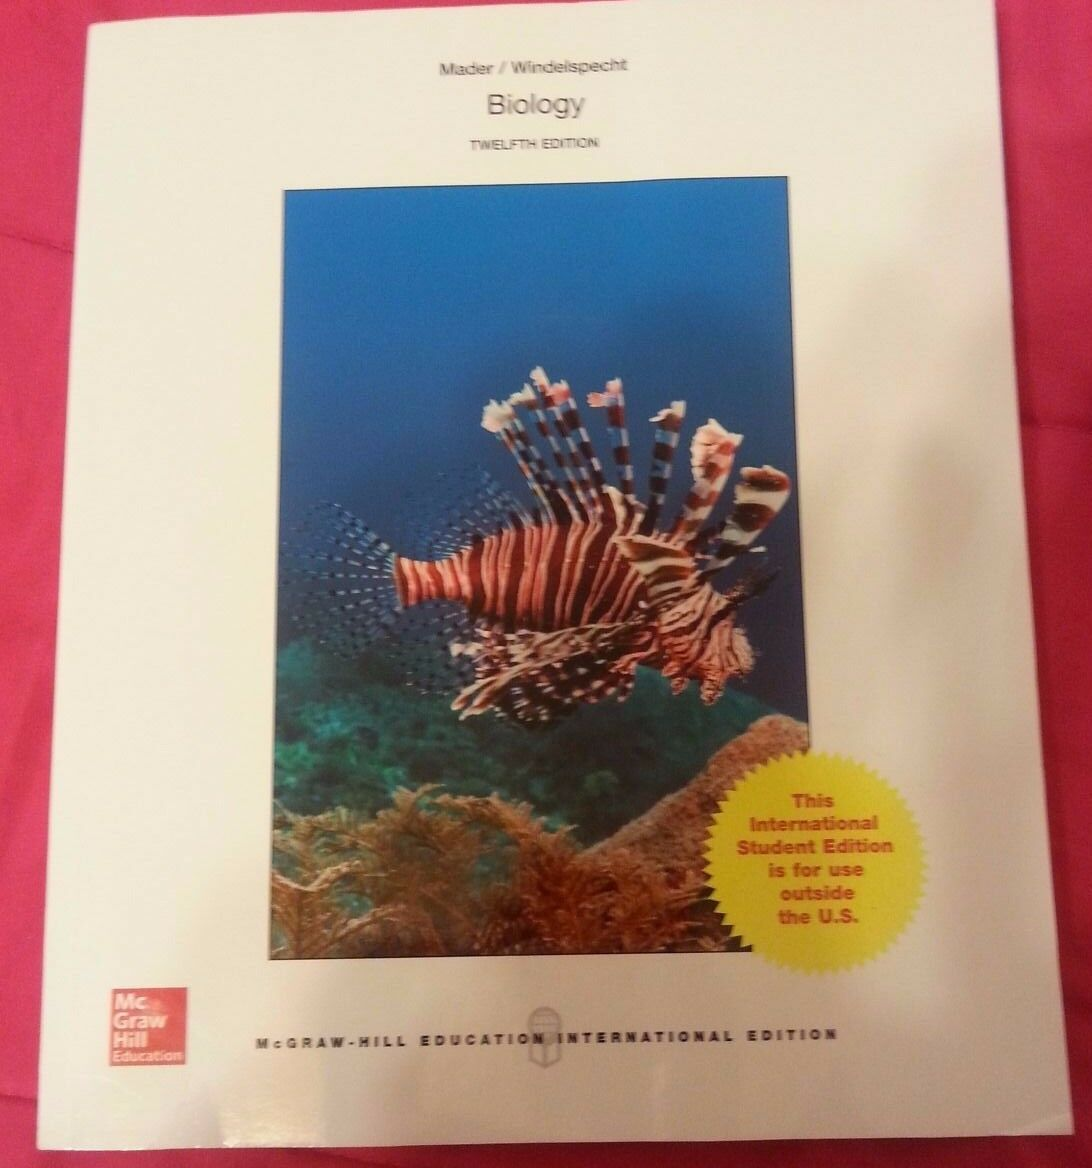 Ap biology mader biology by sylvia mader 2012 hardcover student ap biology mader biology by sylvia mader 2012 hardcover student edition of textbook ebay fandeluxe Gallery